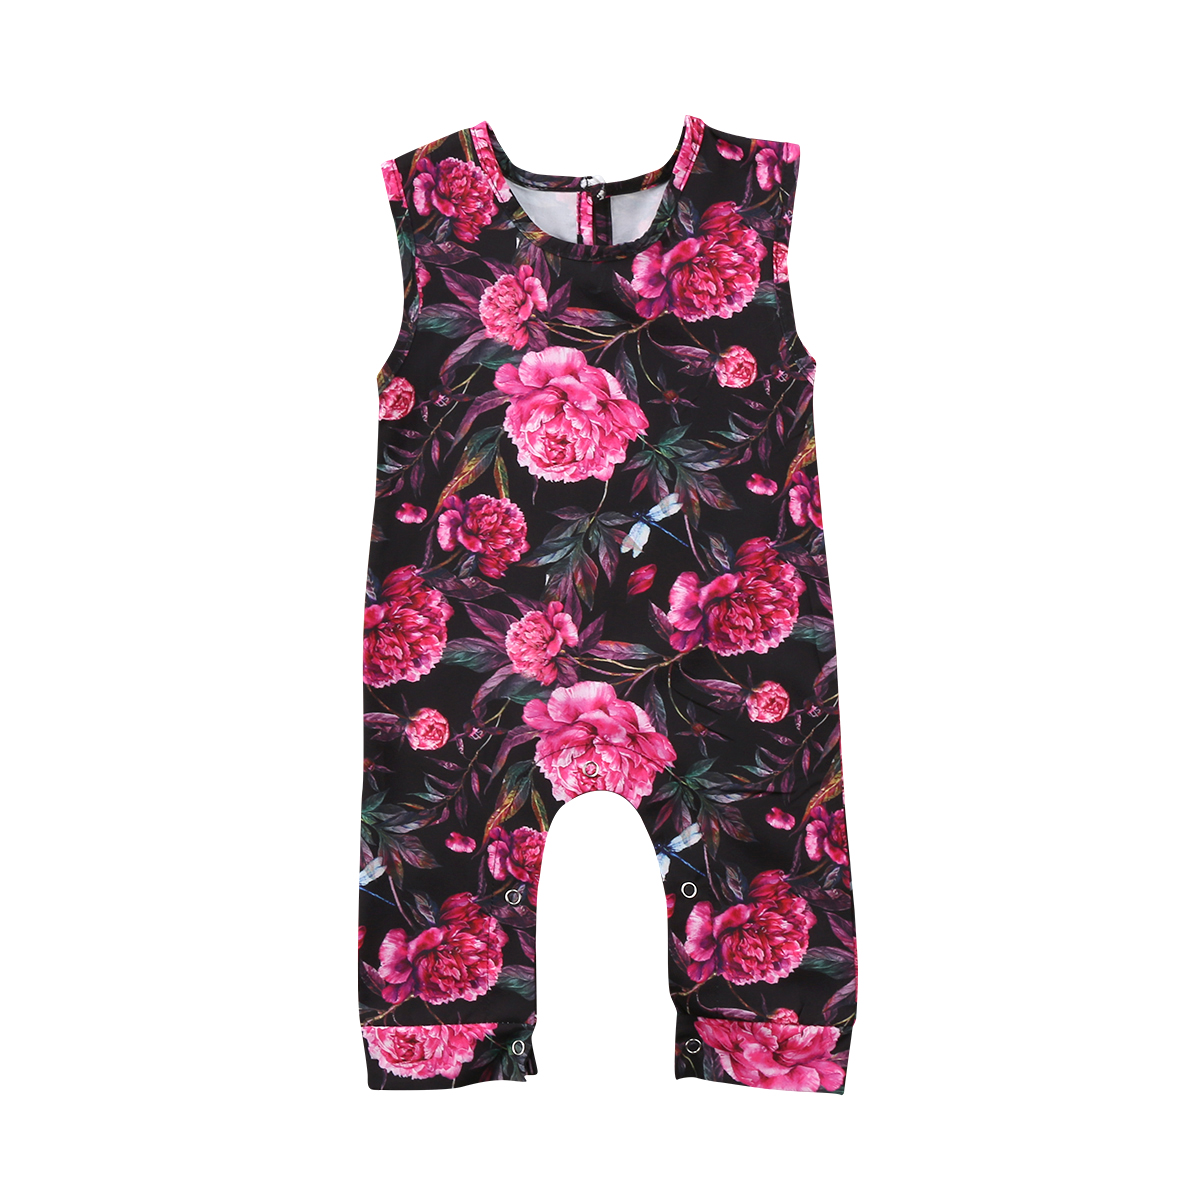 Soft New Arrival Cotton Newborn Kids Baby Girl Floral Sleeveless Floral Romper Playsuit Clothes Outfit 6M-3T